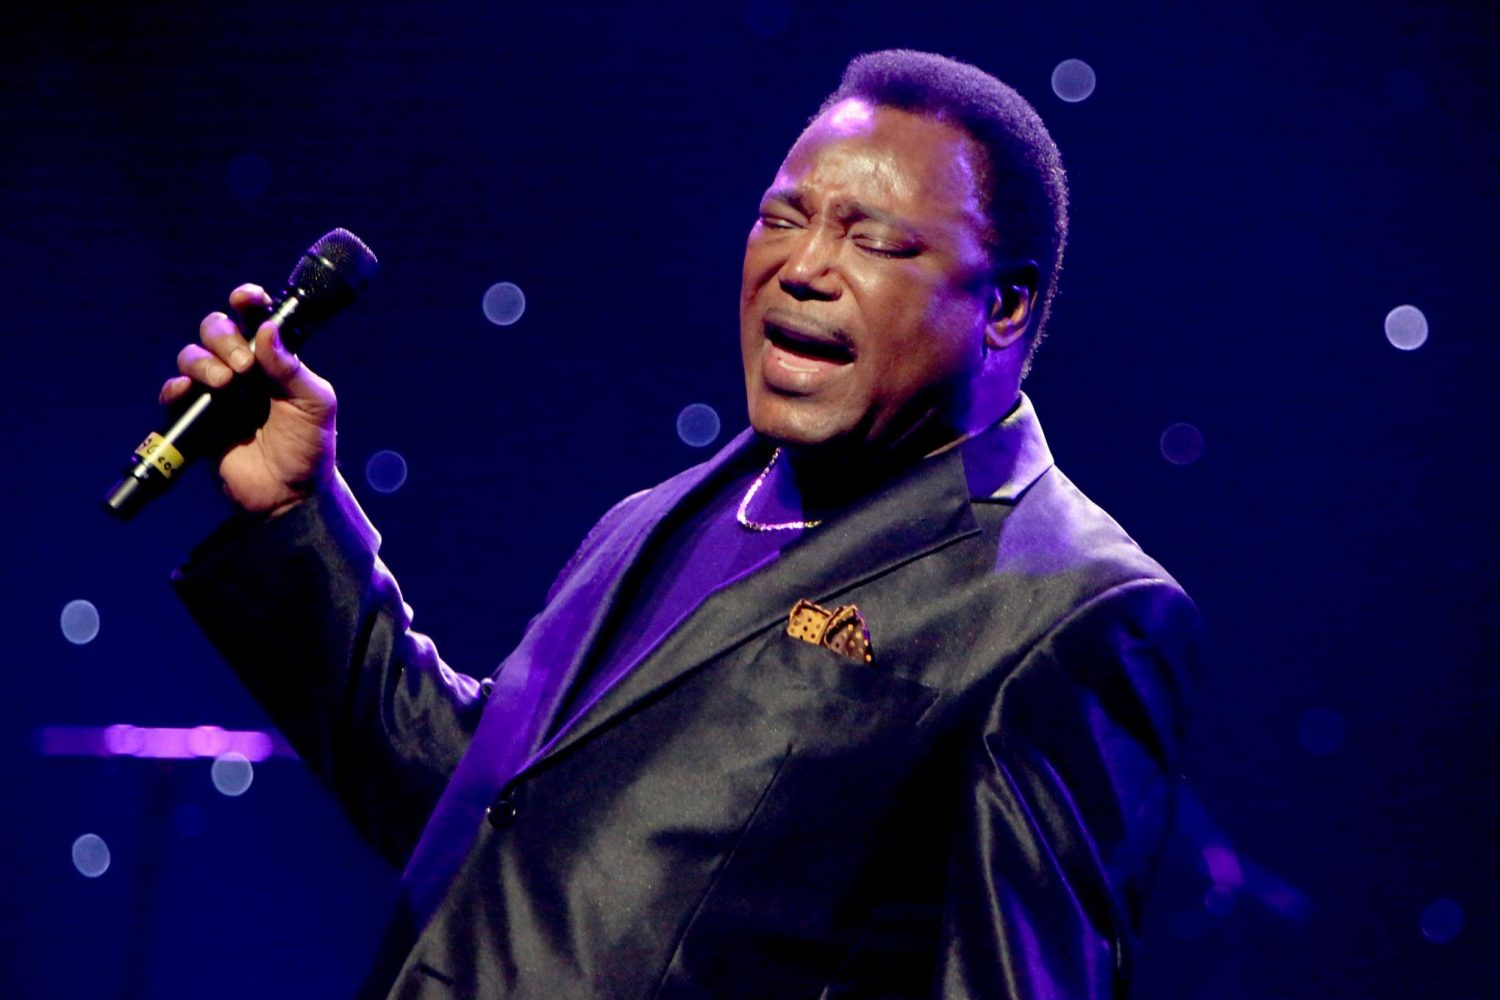 """George Benson Revisits Donny Hathaway's """"The Ghetto"""" on New Live Album"""